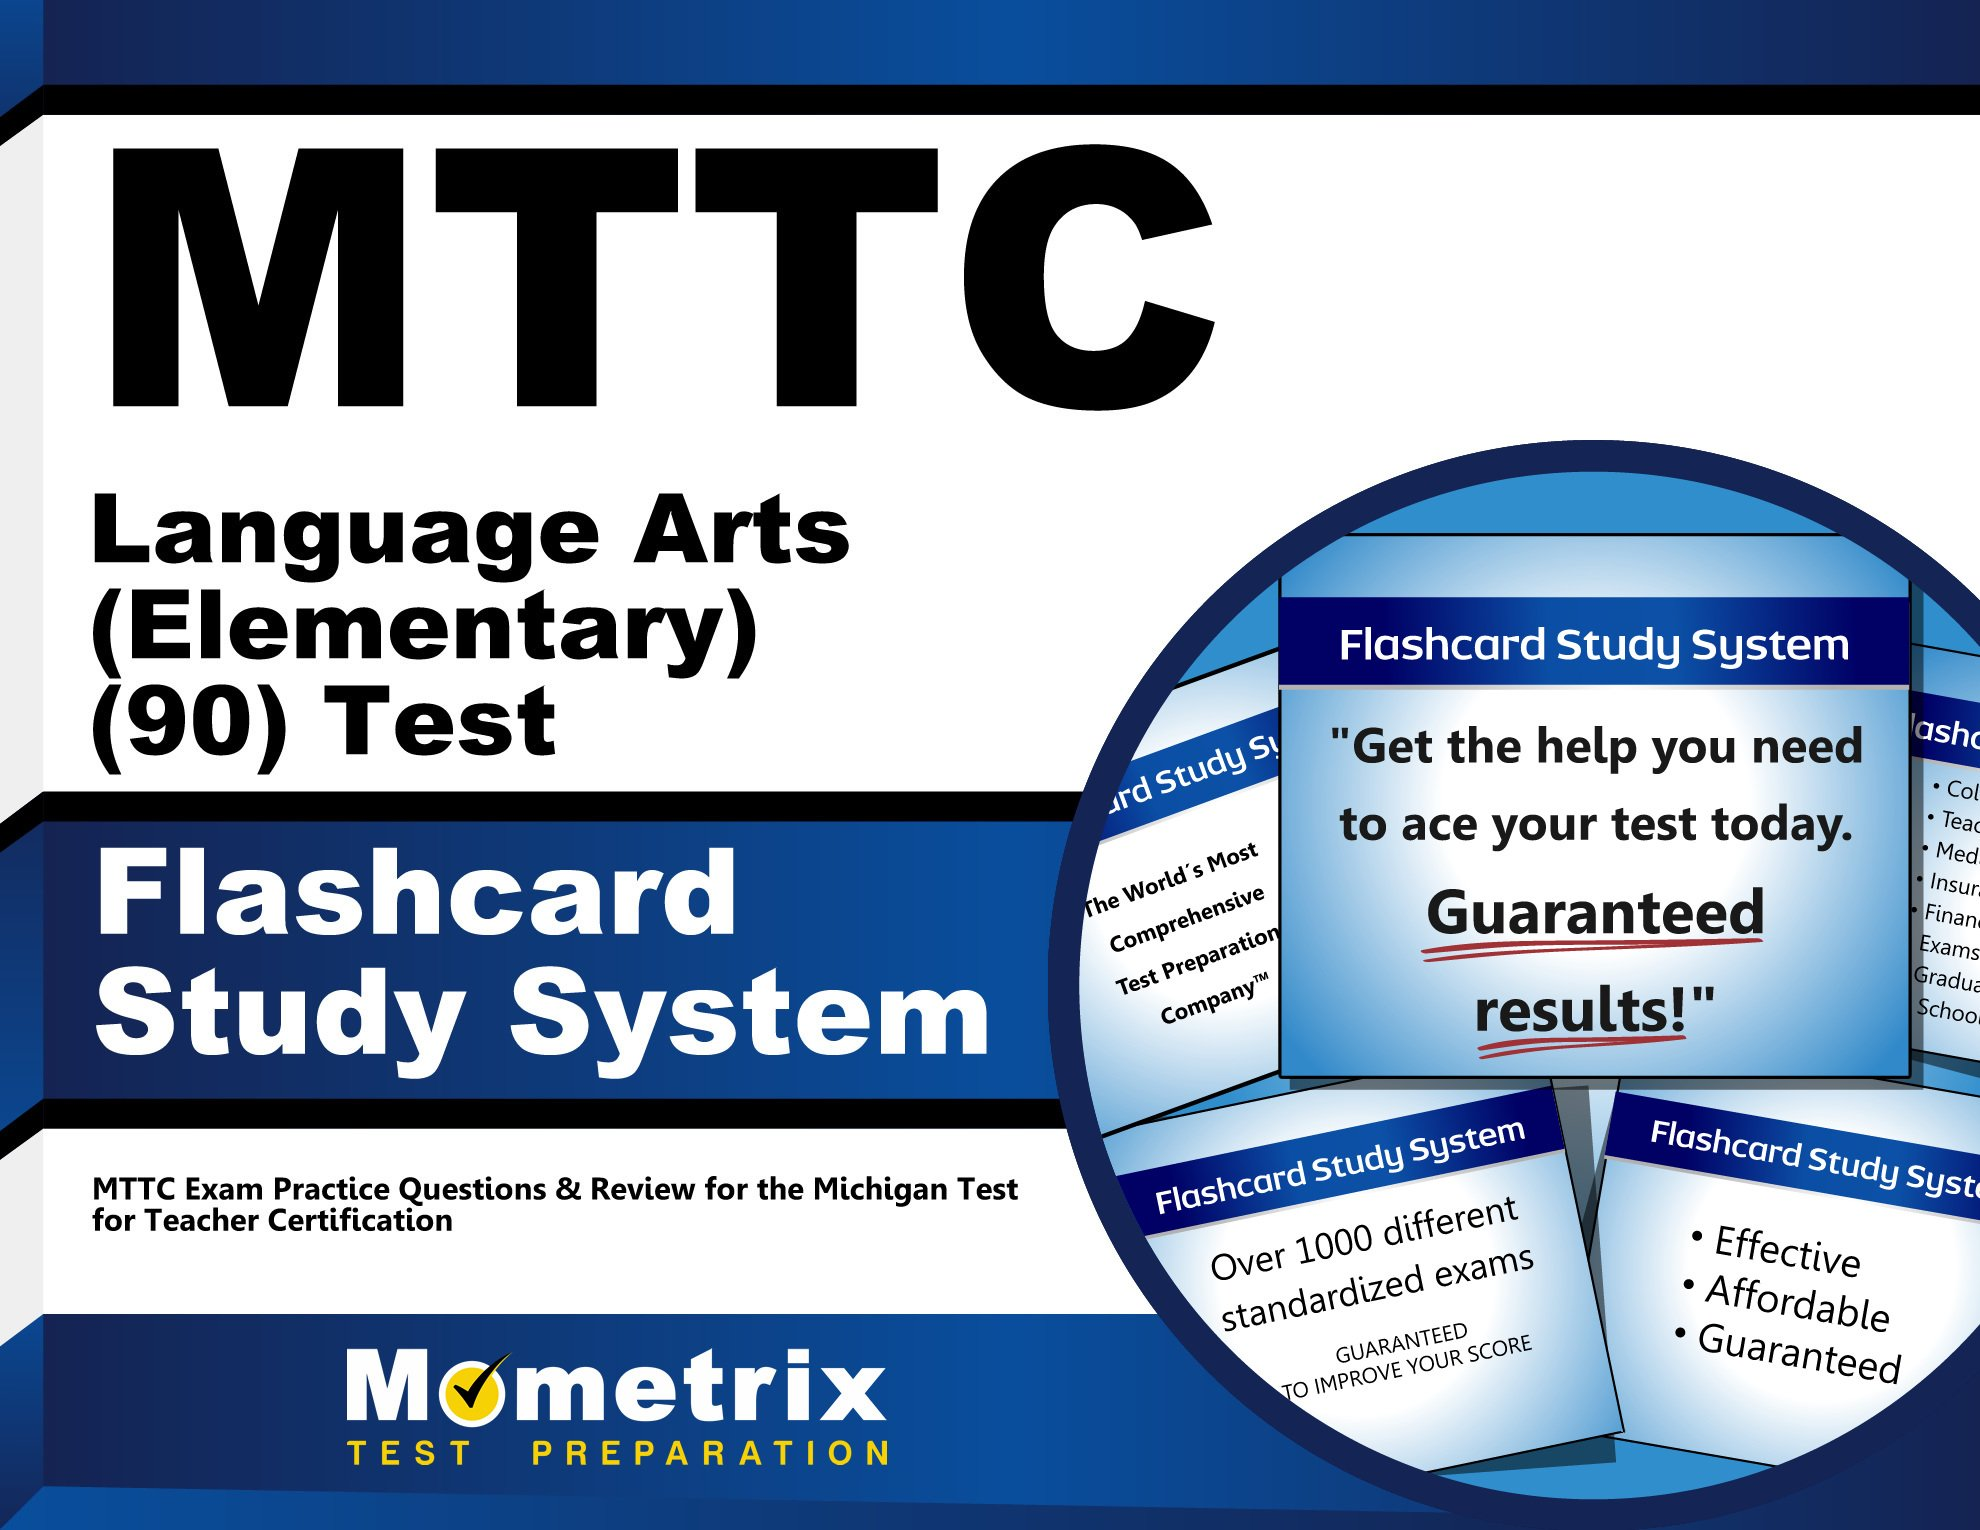 MTTC Language Arts (Elementary) (90) Test Flashcard Study System: MTTC Exam Practice Questions & Review for the Michigan Test for Teacher Certification (Cards) by Mometrix Media LLC